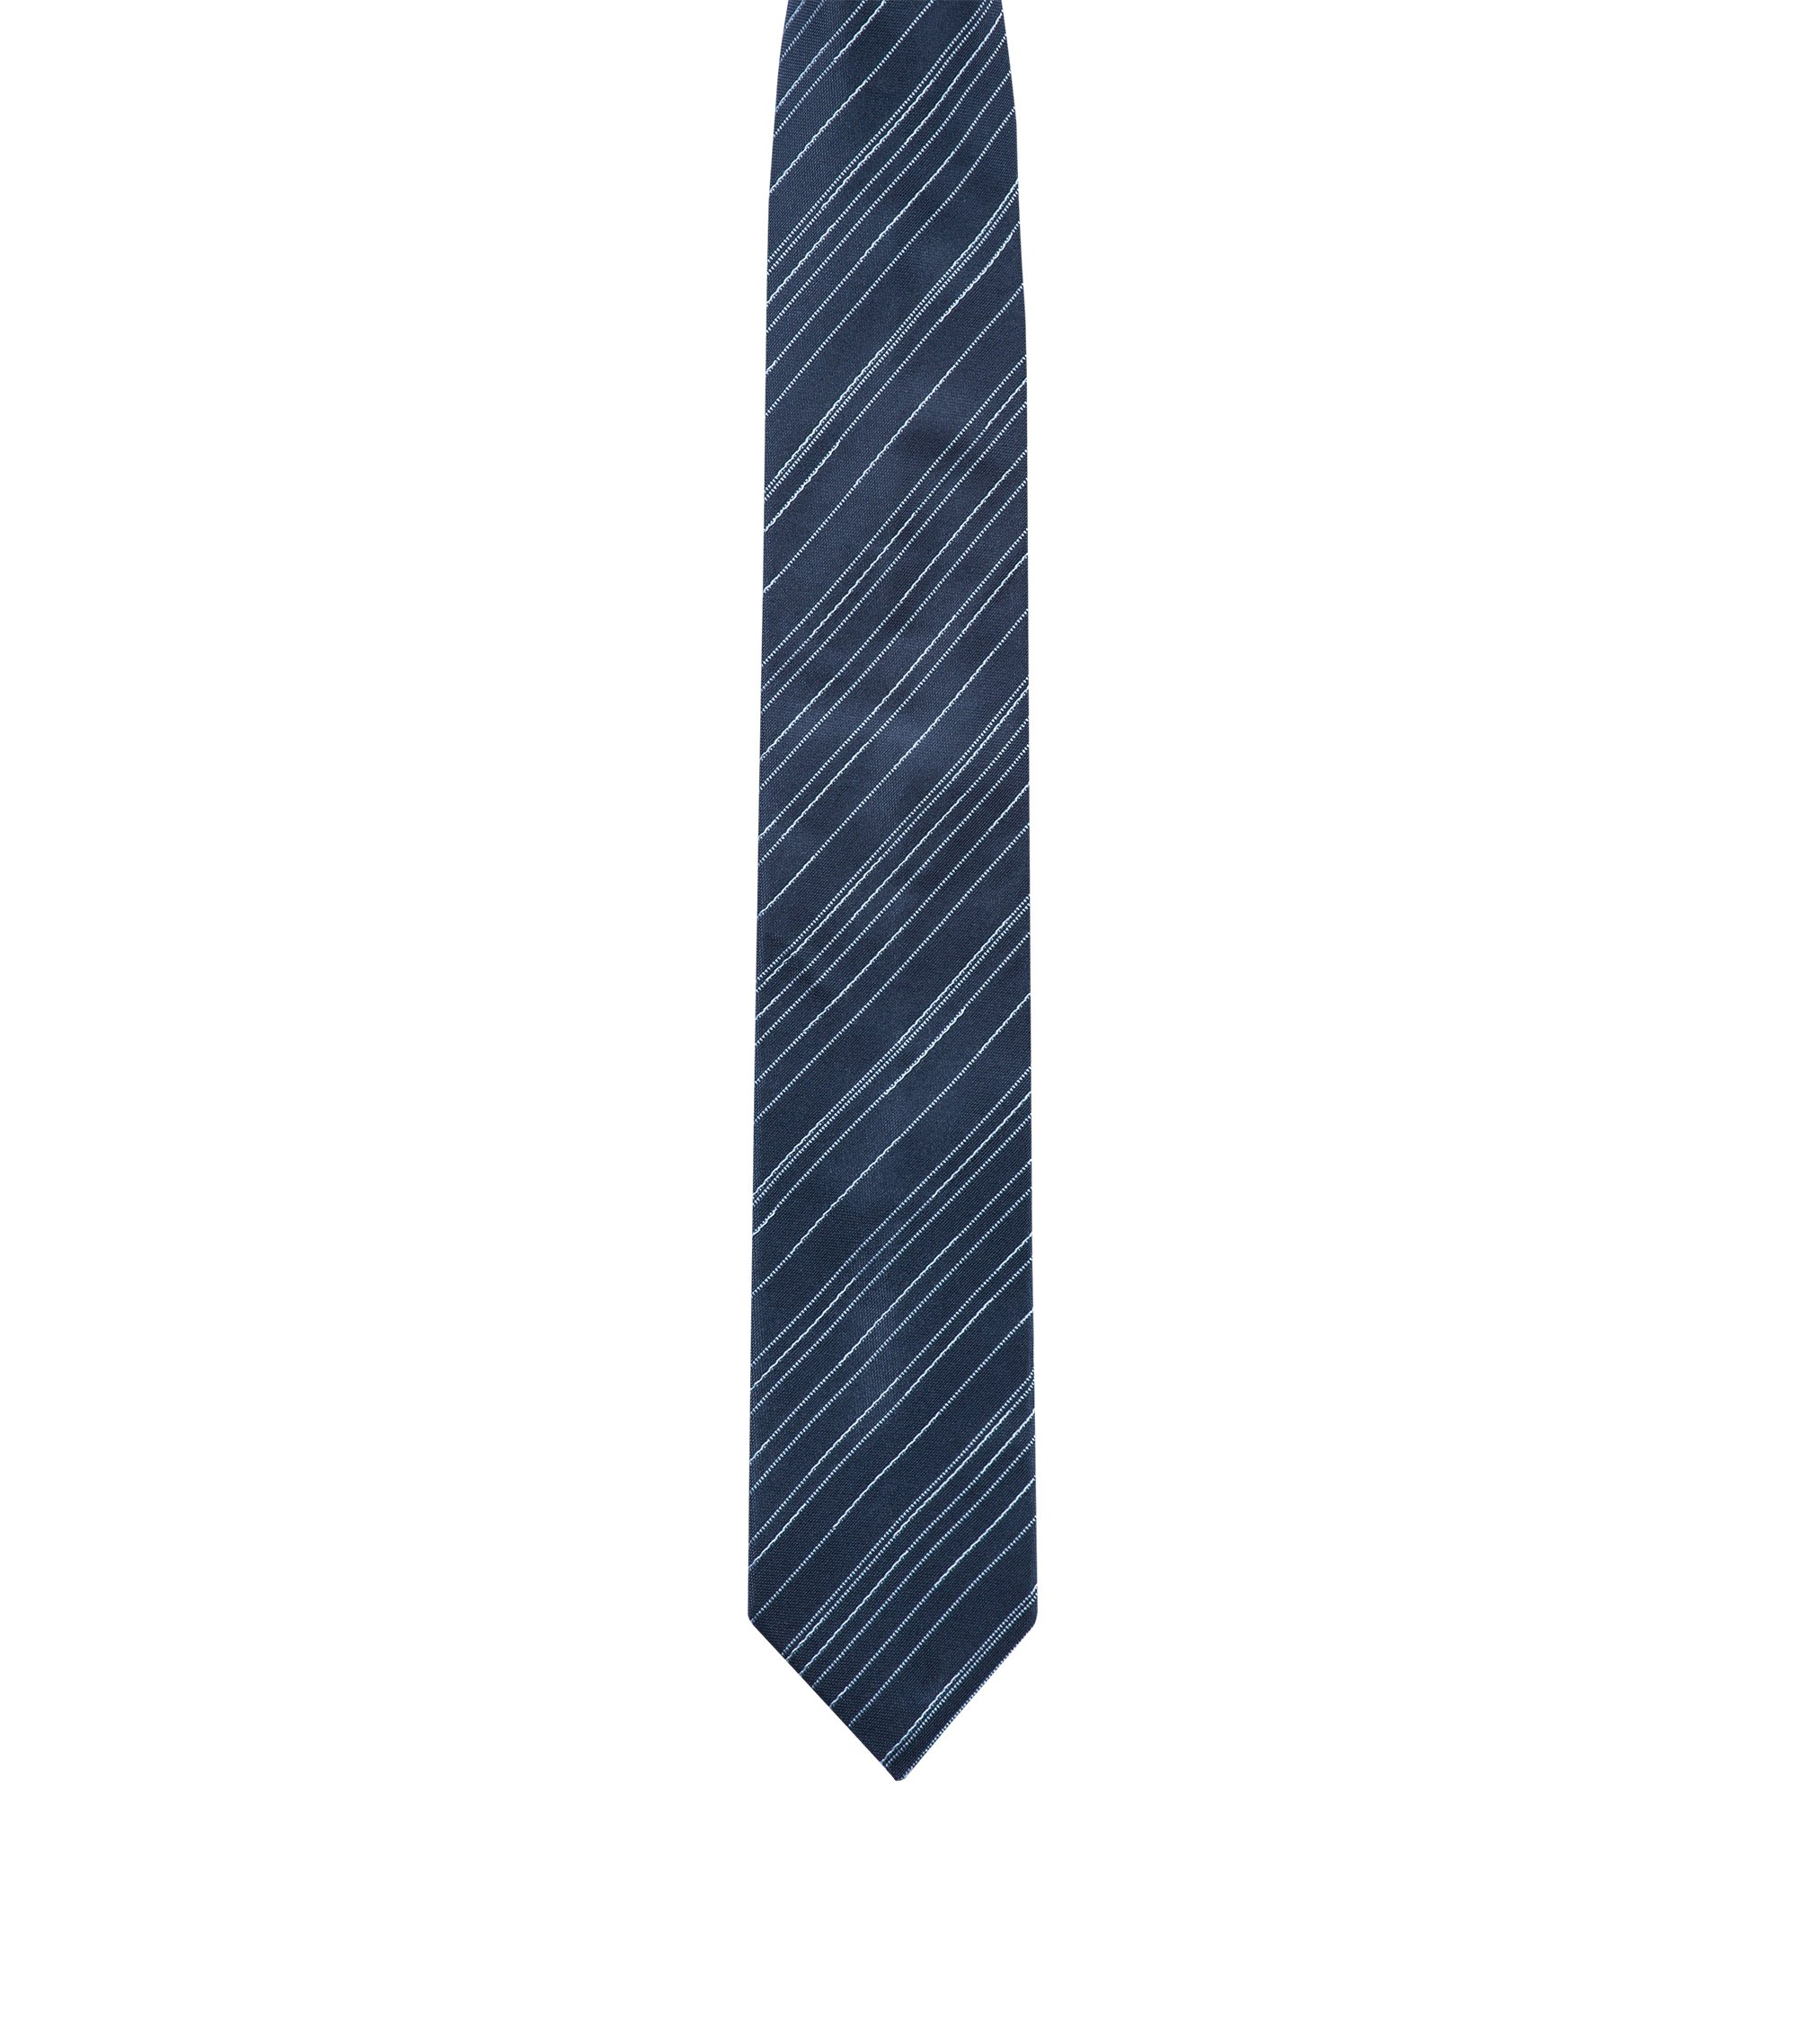 Slimline tie in silk jacquard with diagonal stripes, Dark Blue